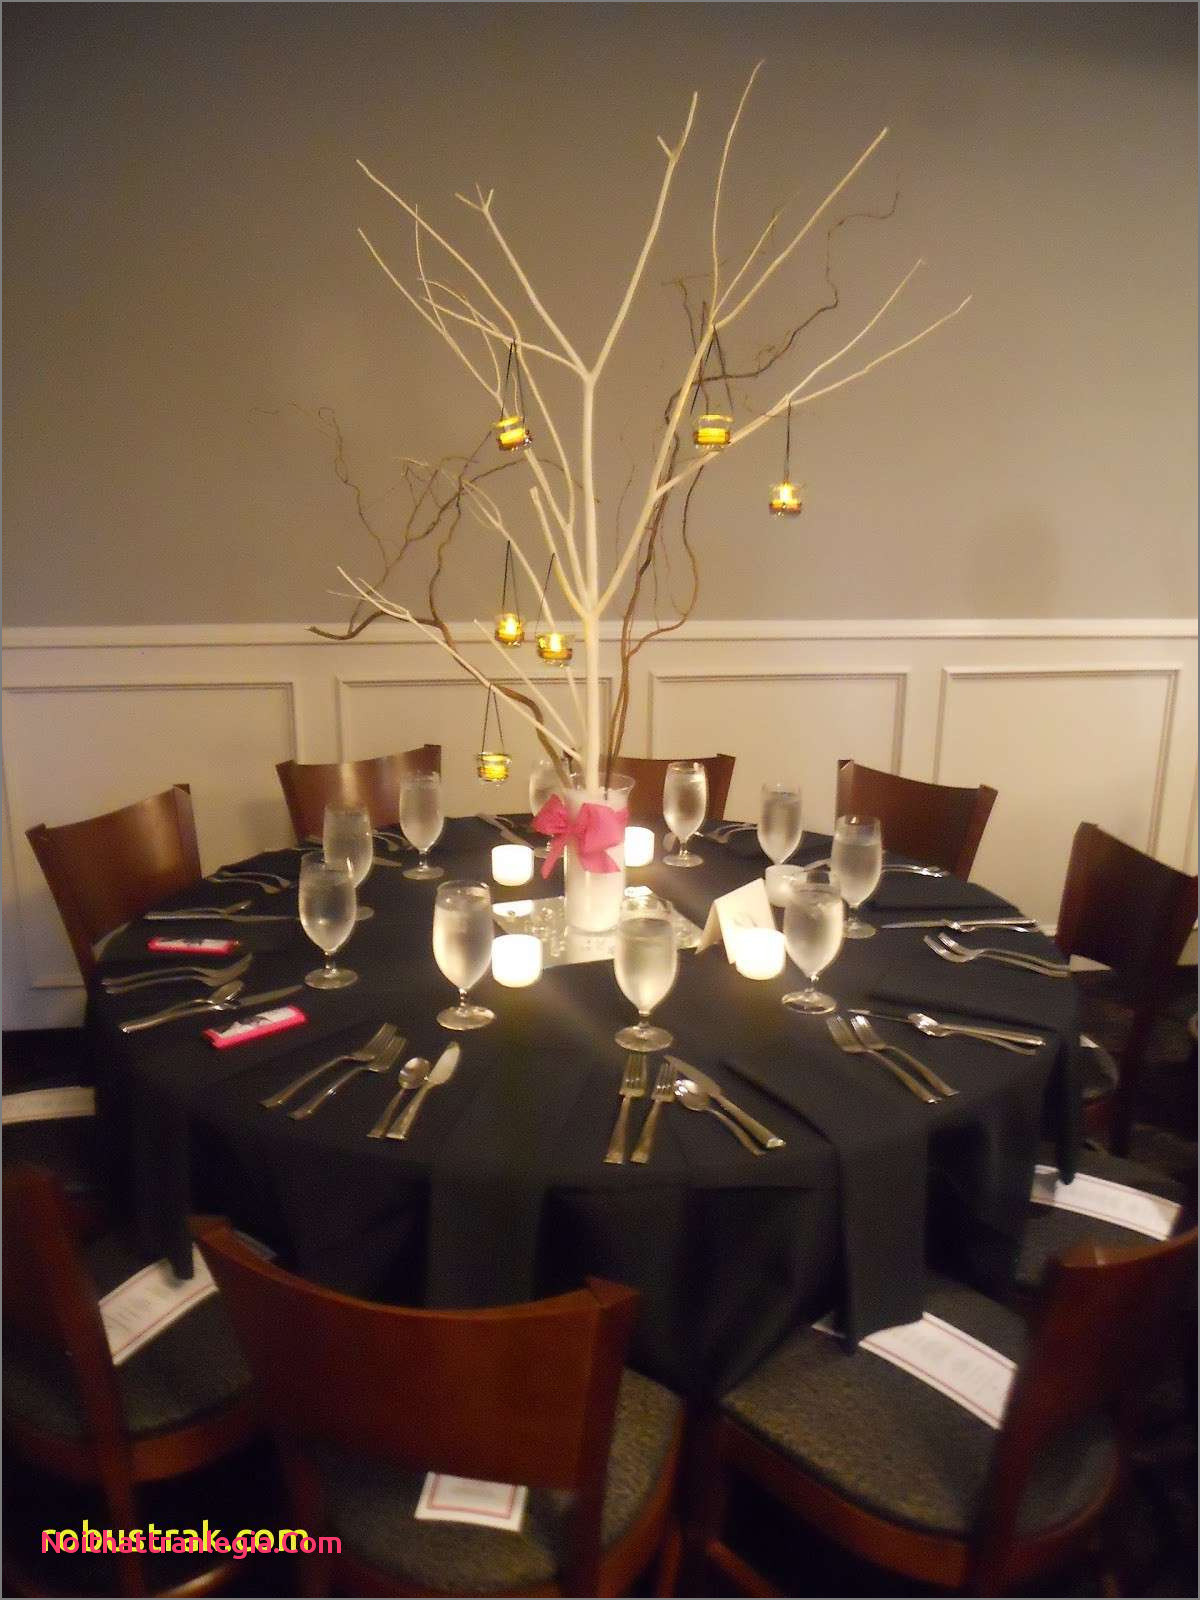 Tall Silver Vases for Wedding Centerpieces Of 20 Wedding Vases Noithattranlegia Vases Design In Dollar Tree Wedding Decorations Awesome H Vases Dollar Vase I 0d Design Centerpieces Trees